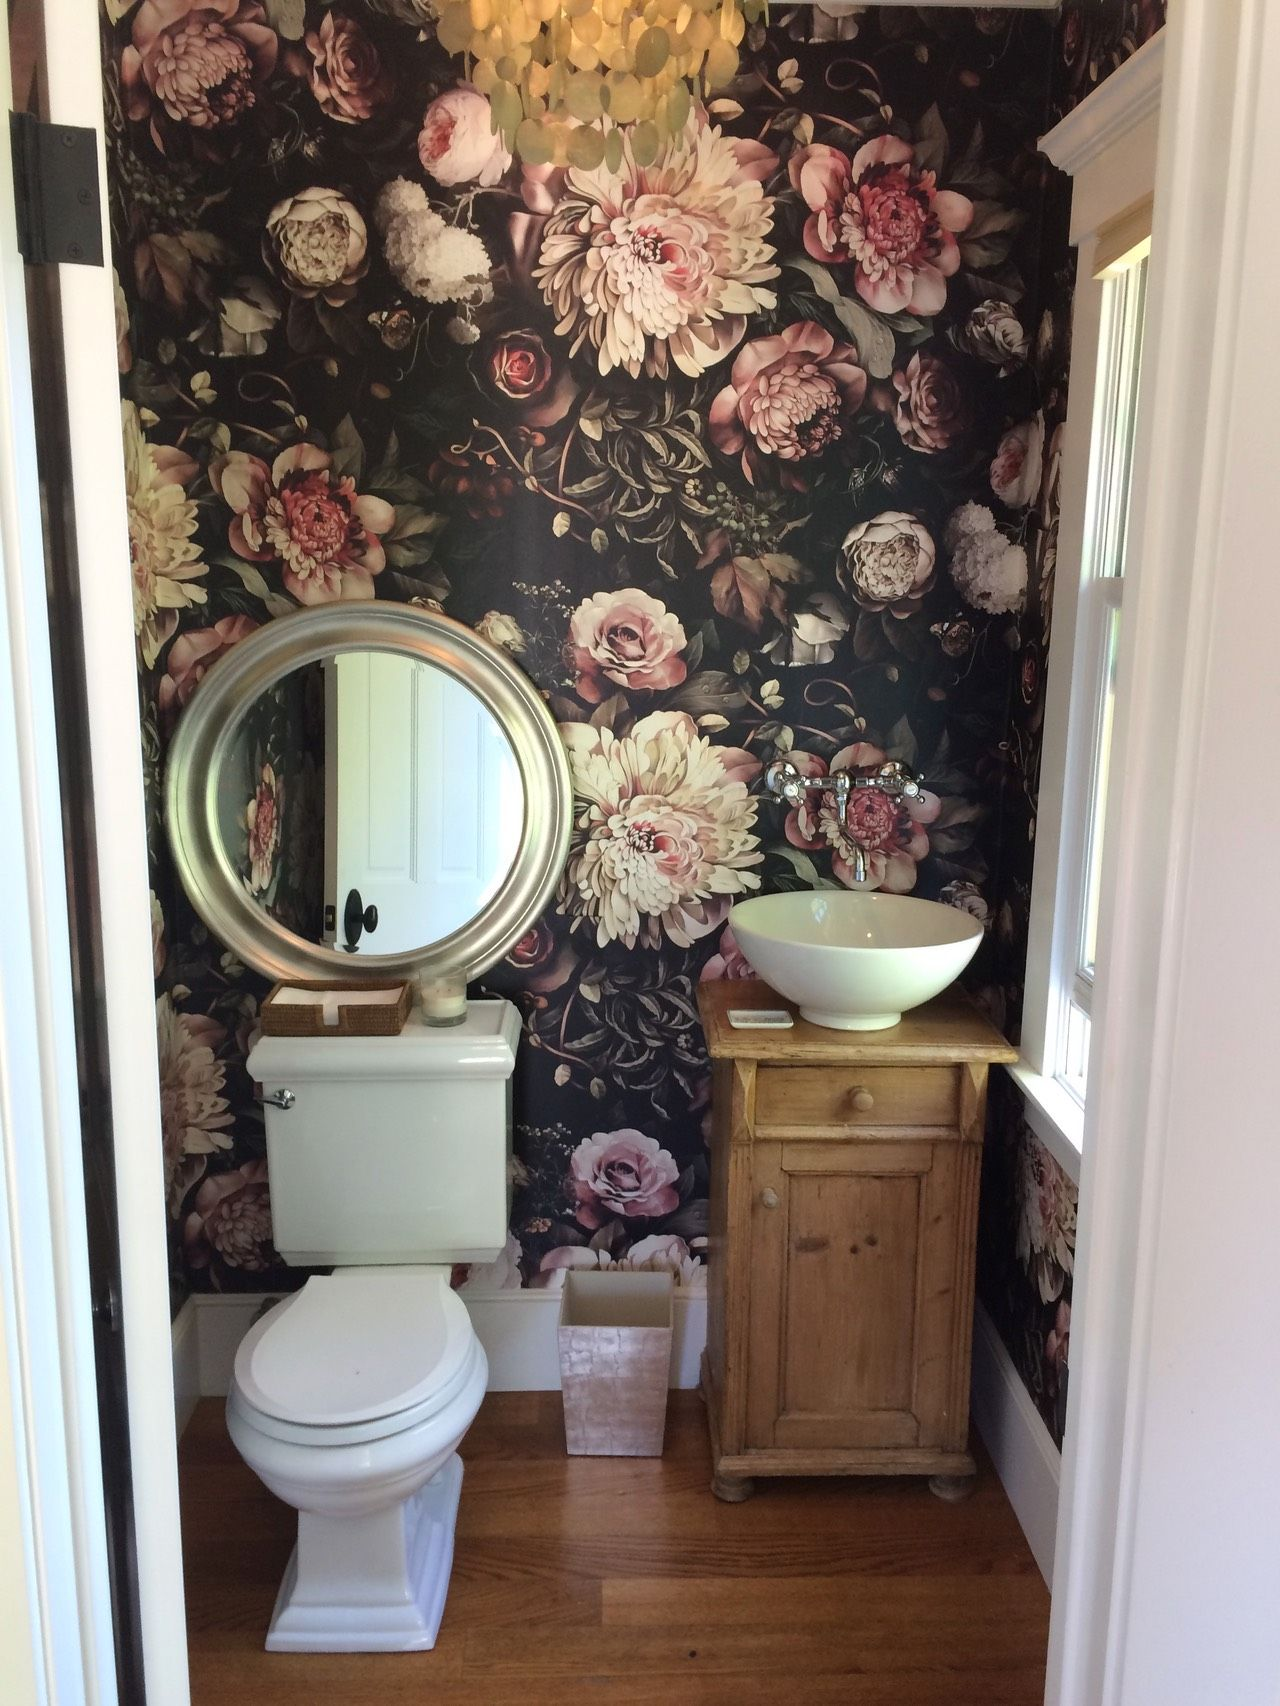 Ellie Cashman Wallpapers Marin County for Trista Jim's